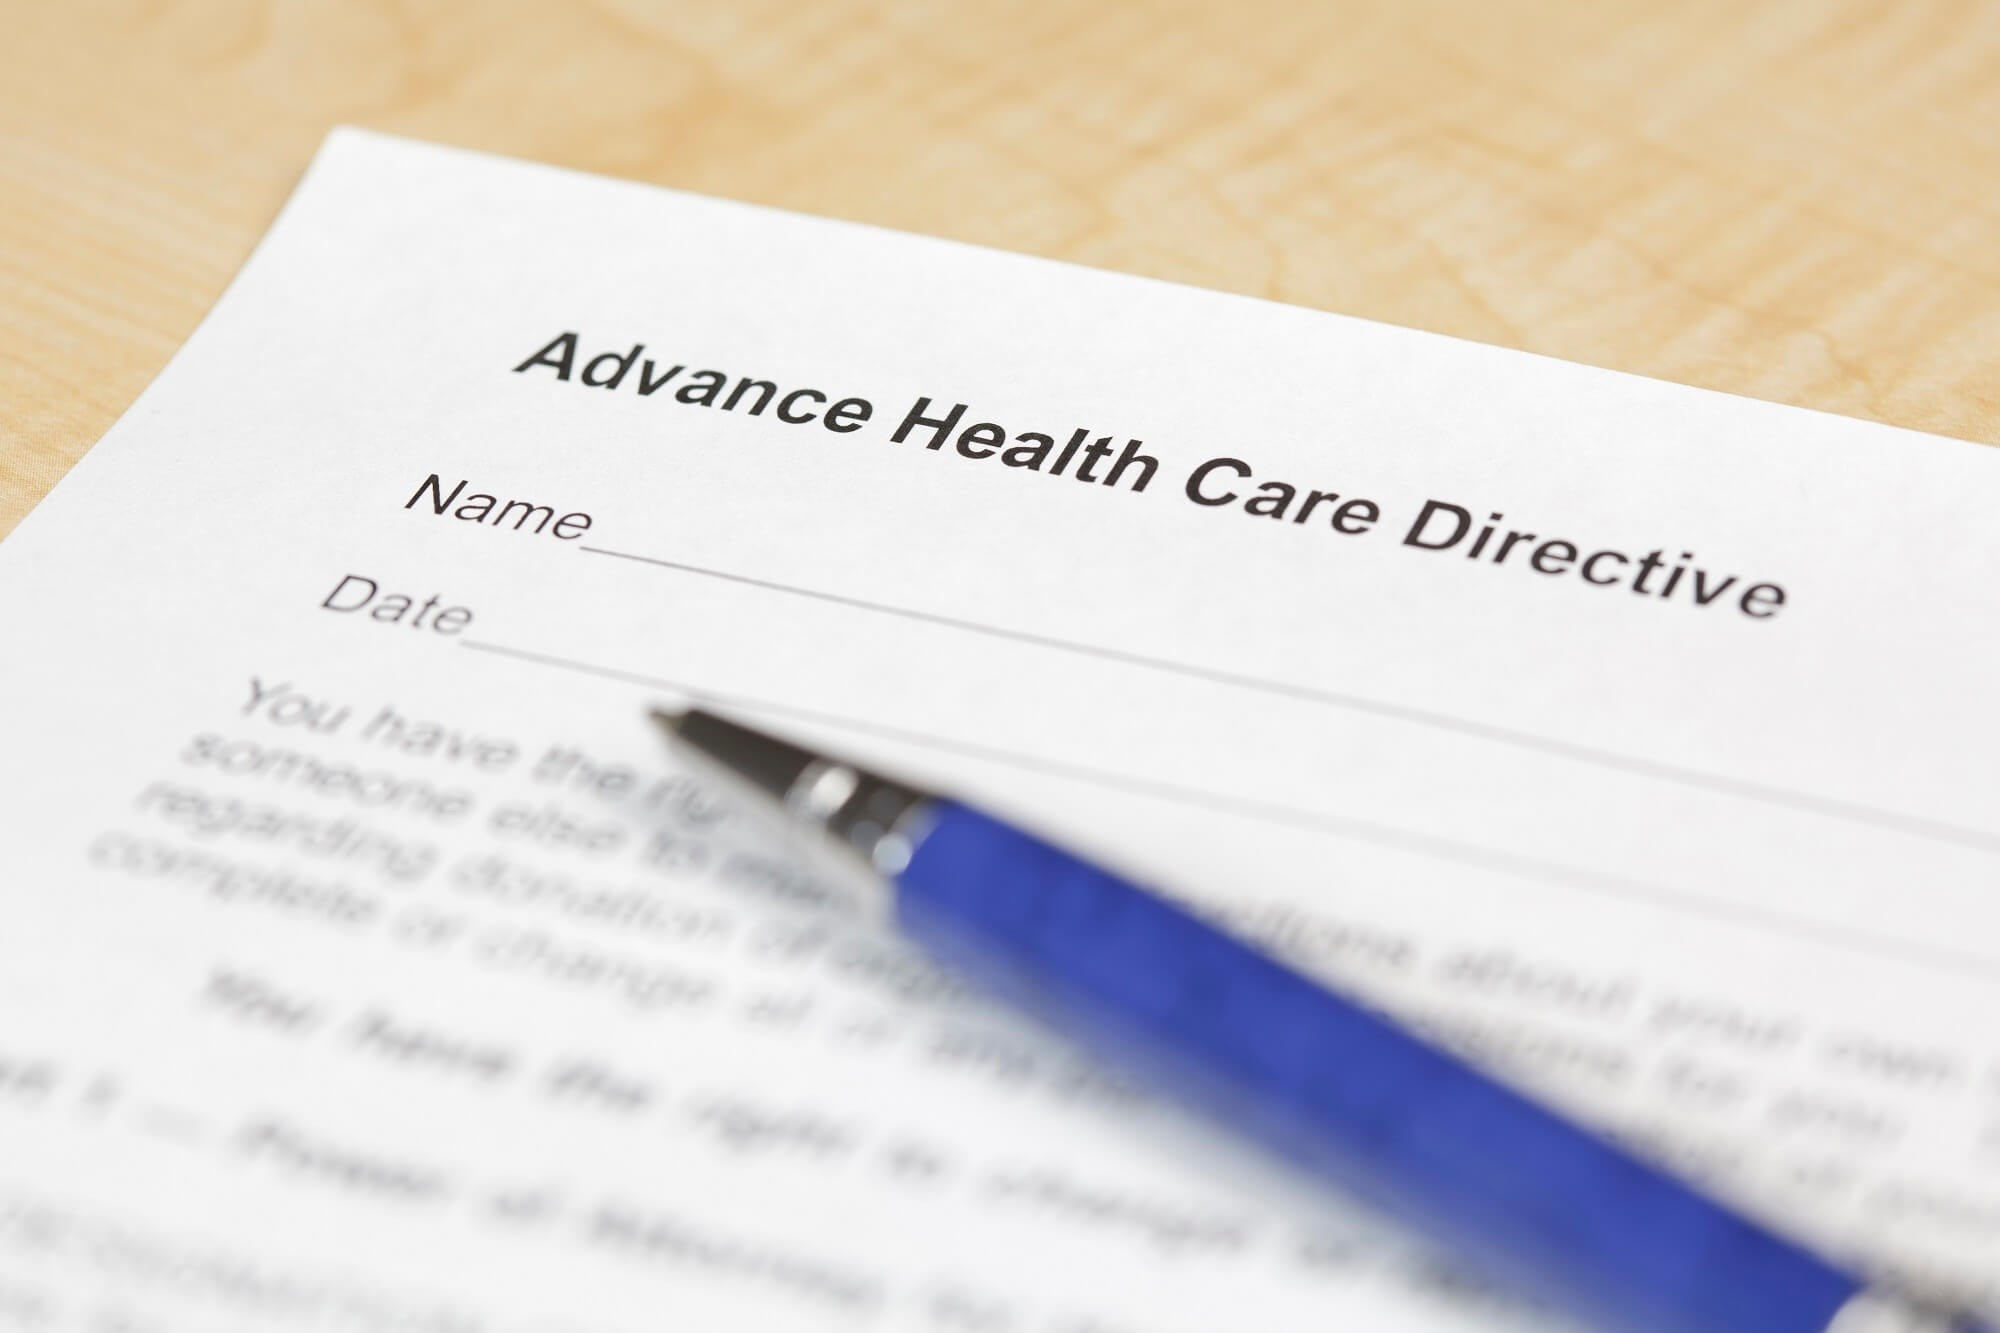 Online Tool Helps Patients With Advance Care Planning